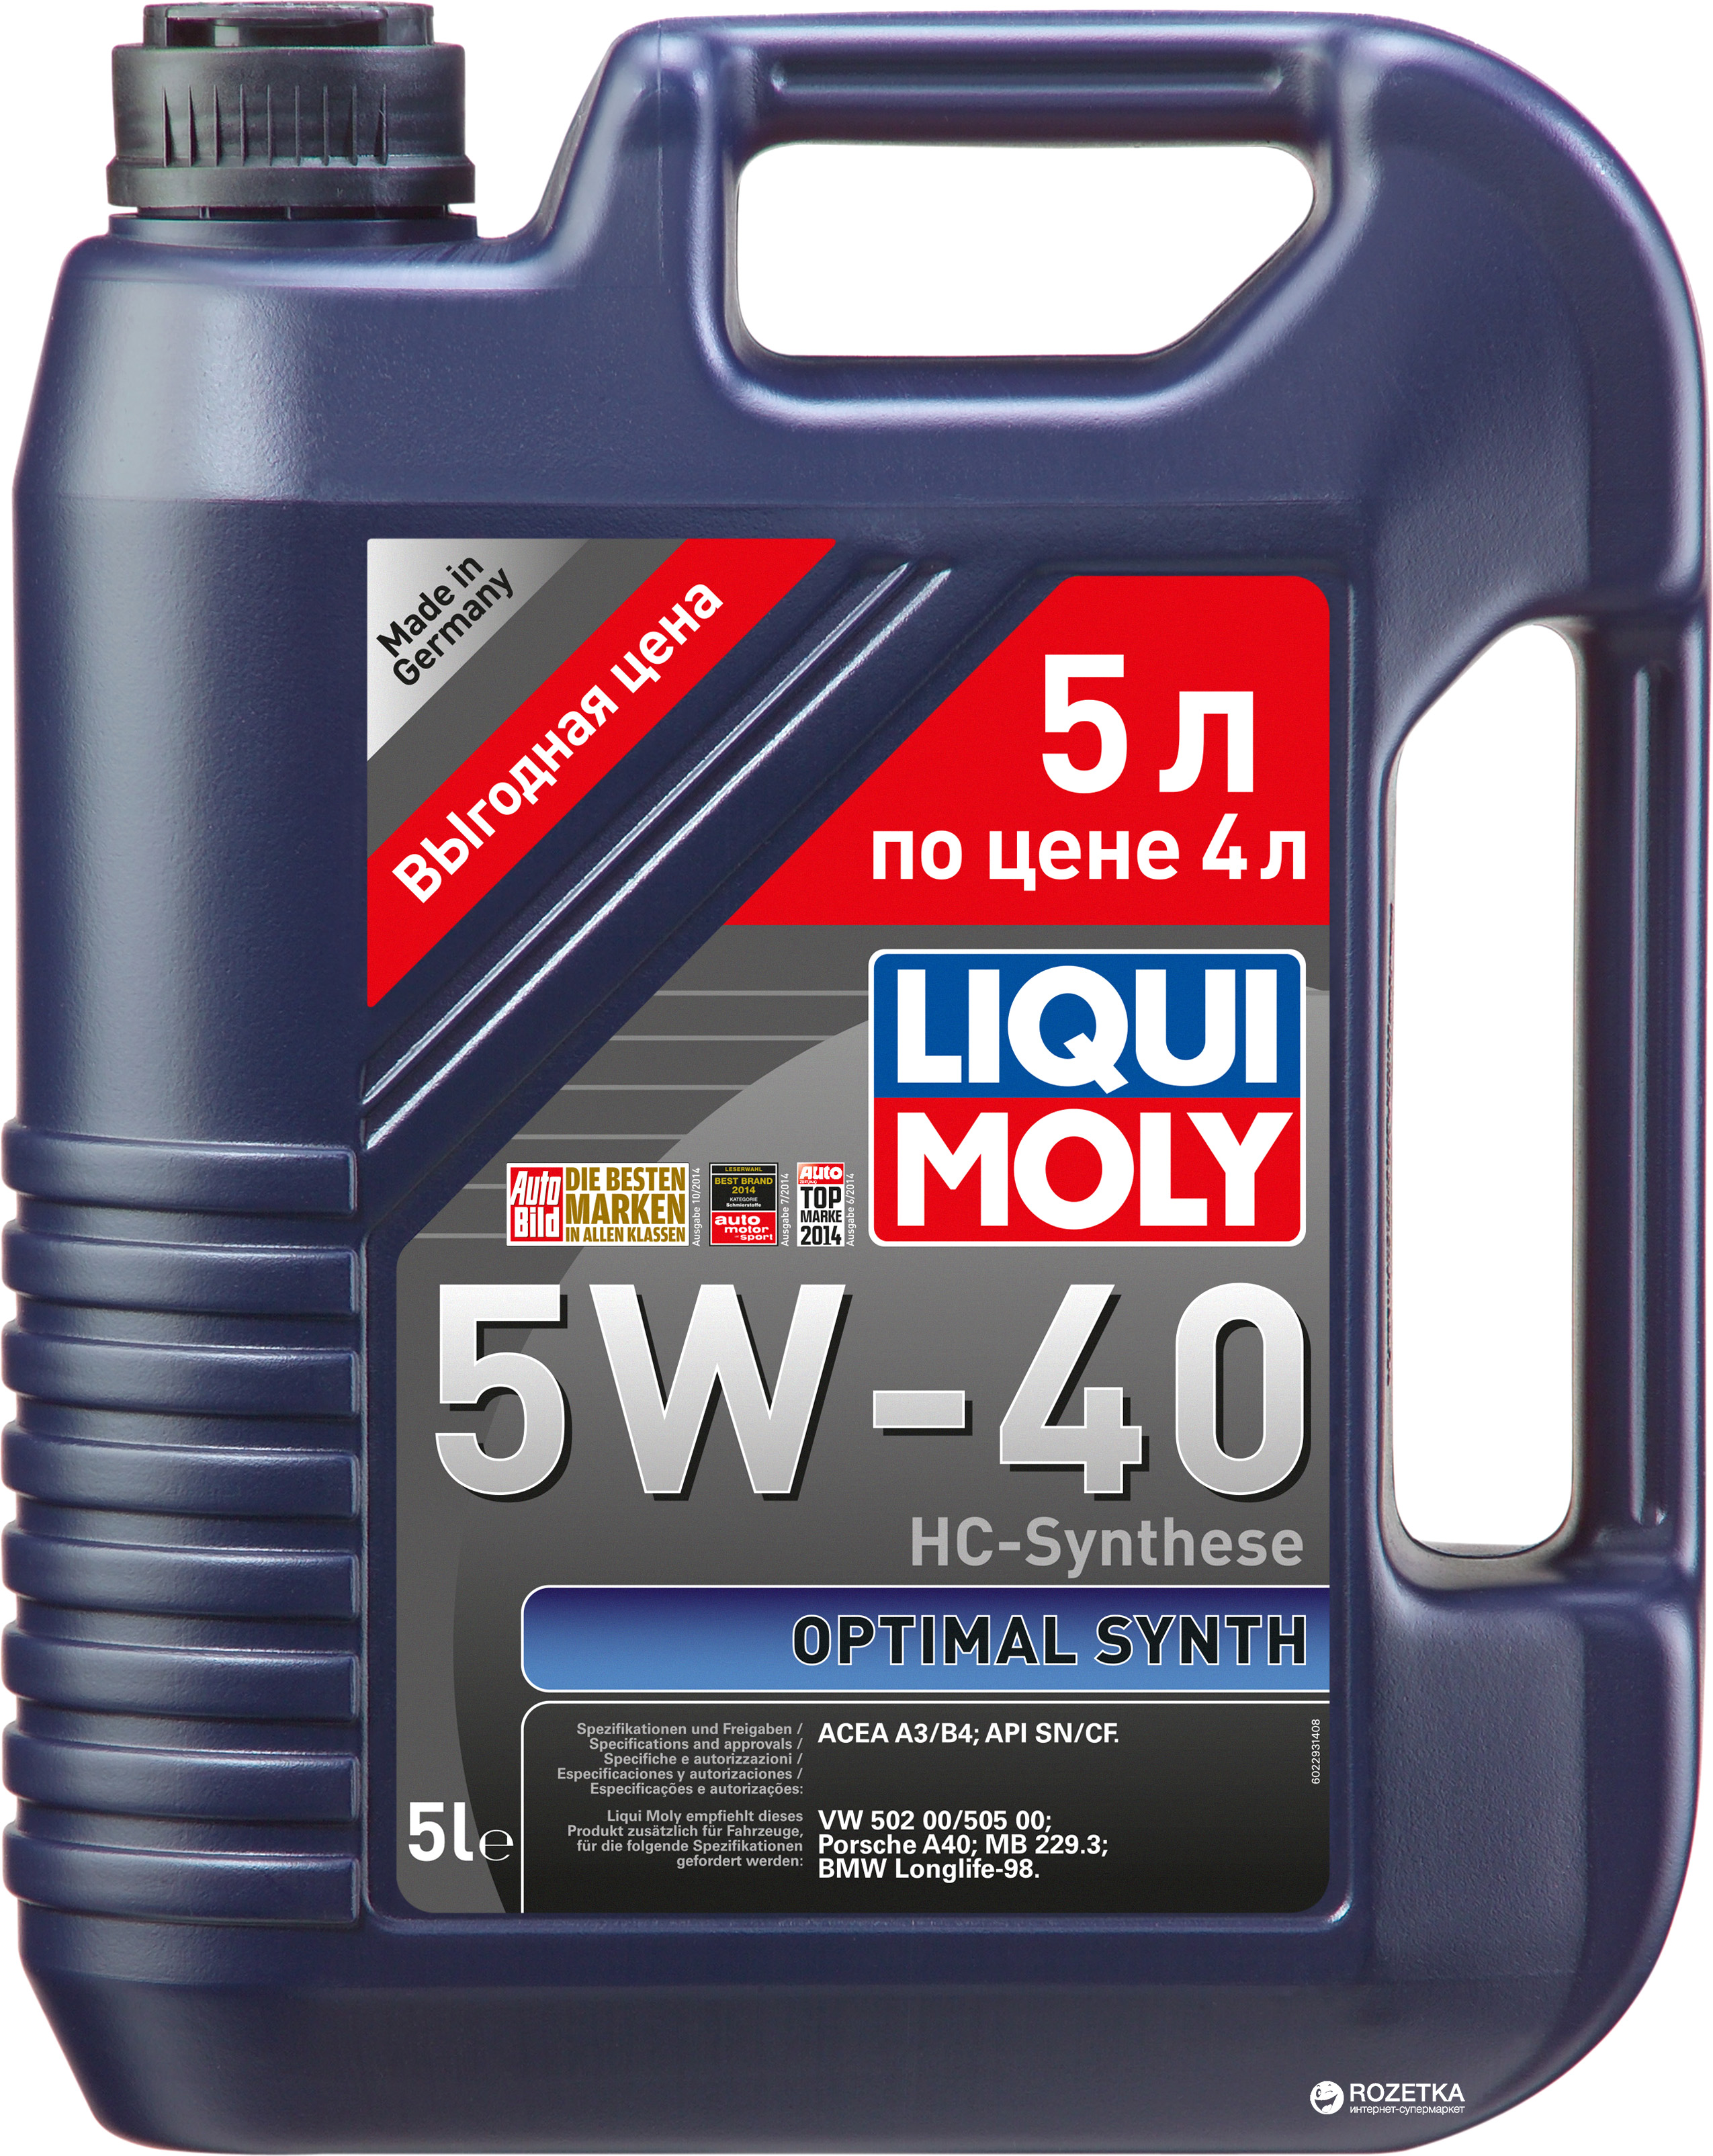 Моторное масло Liqui Moly Optimal Synth 5W-40 5 л (2293/3926)